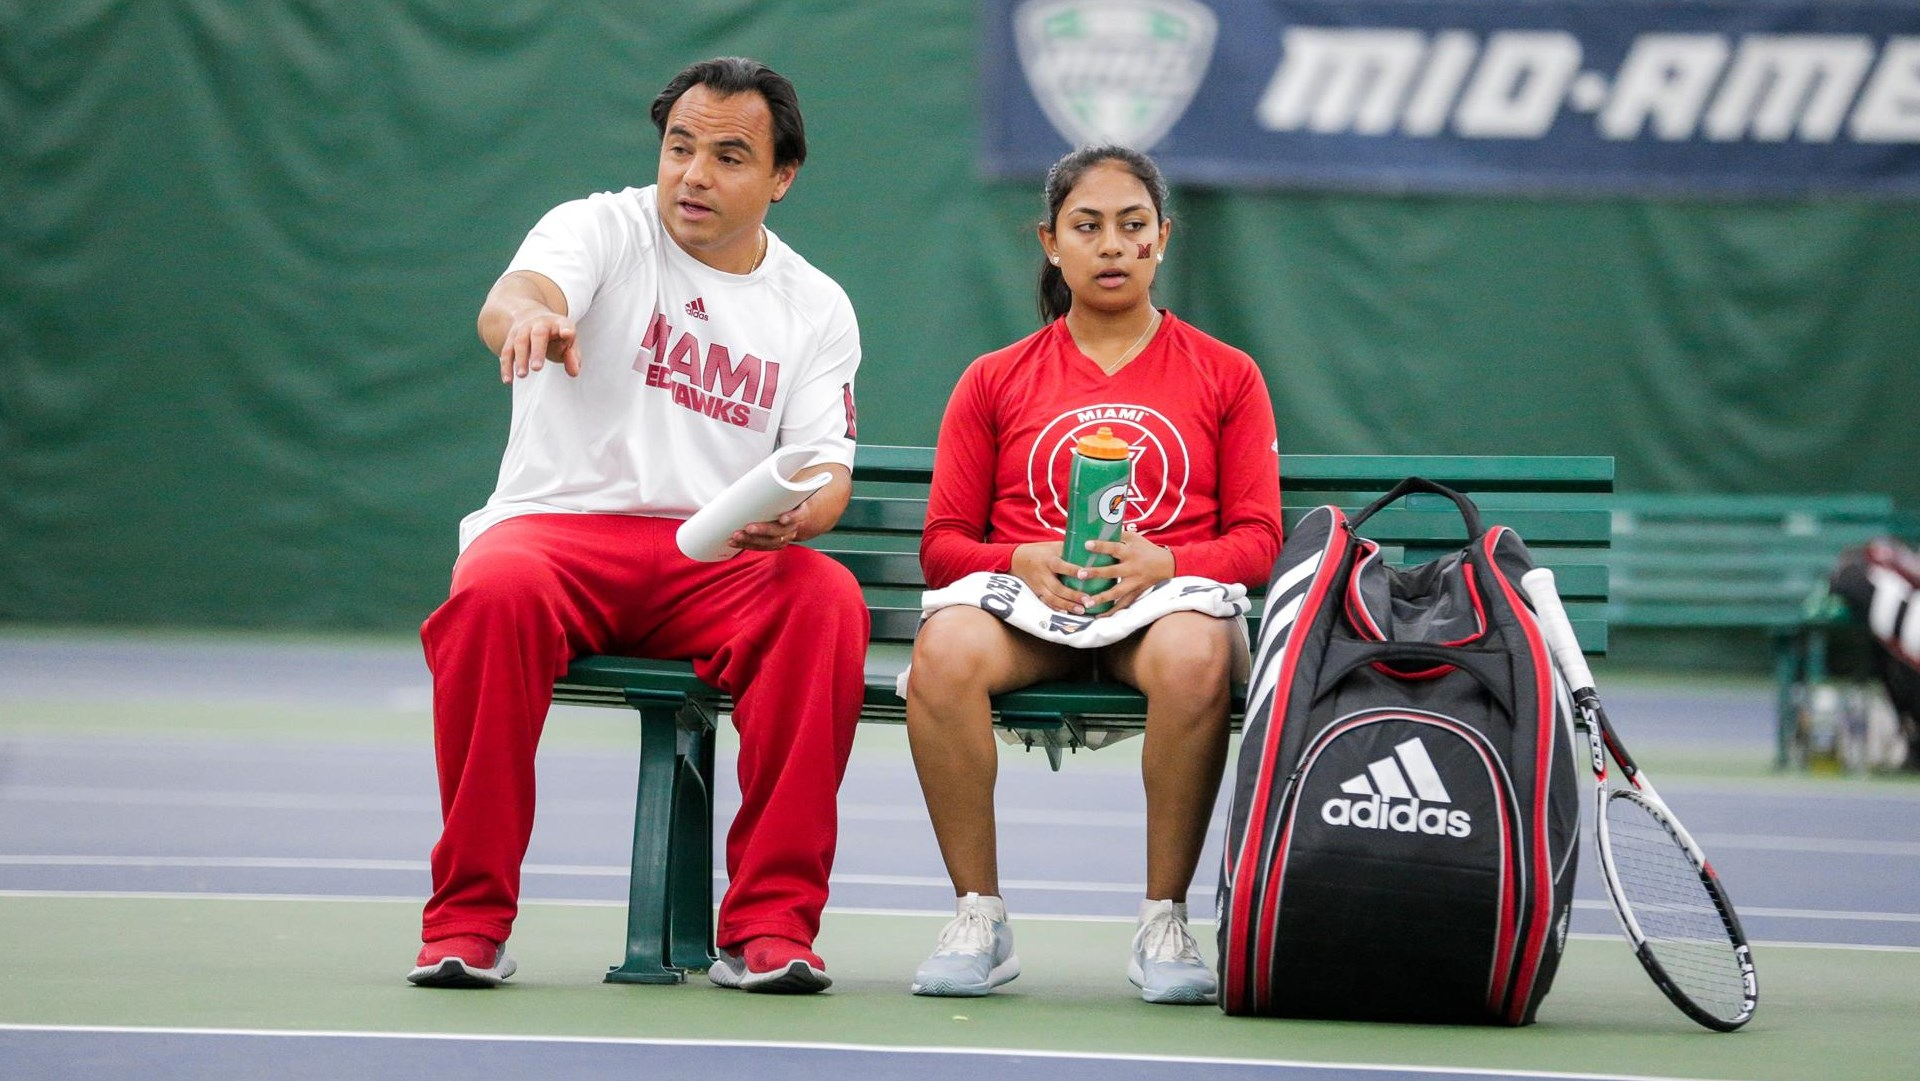 Women's Tennis - Miami University RedHawks